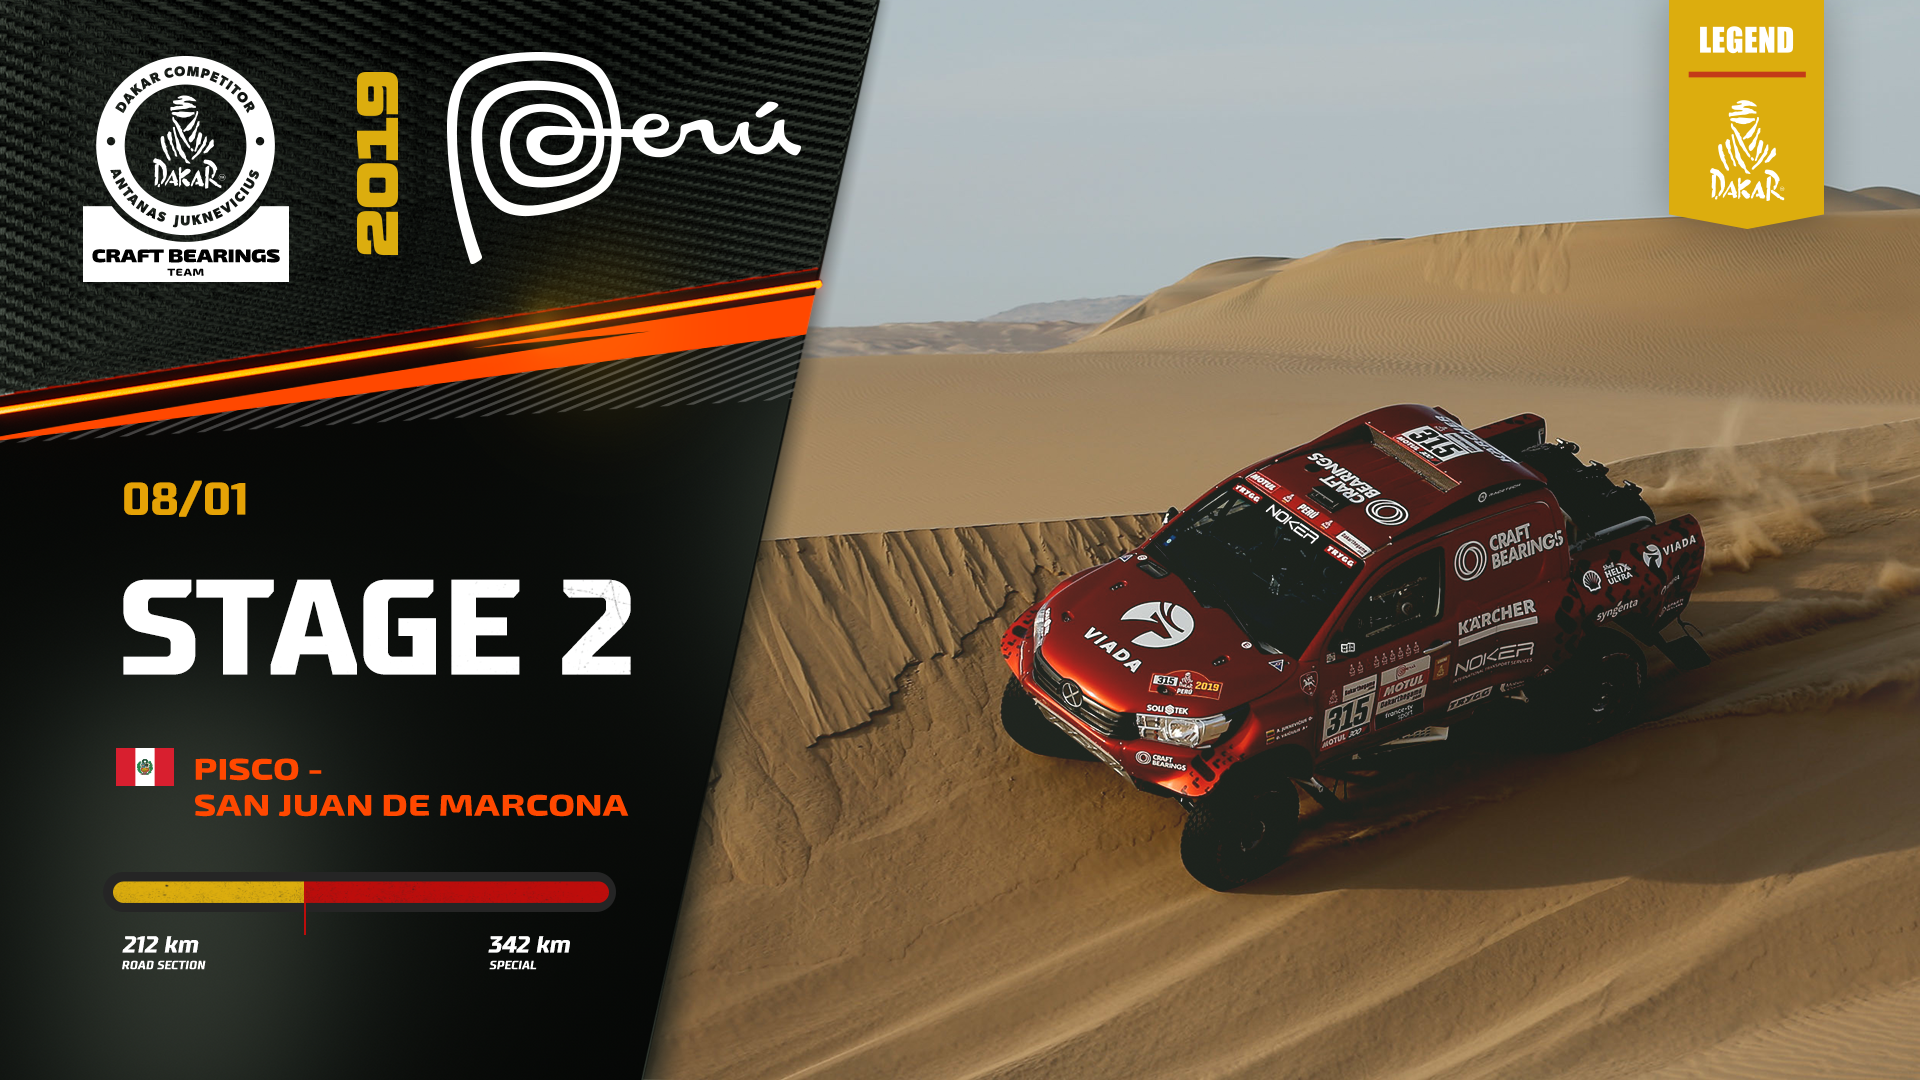 Dakar Rally 2019. Antanas Juknevicius Stage 2 Highlights